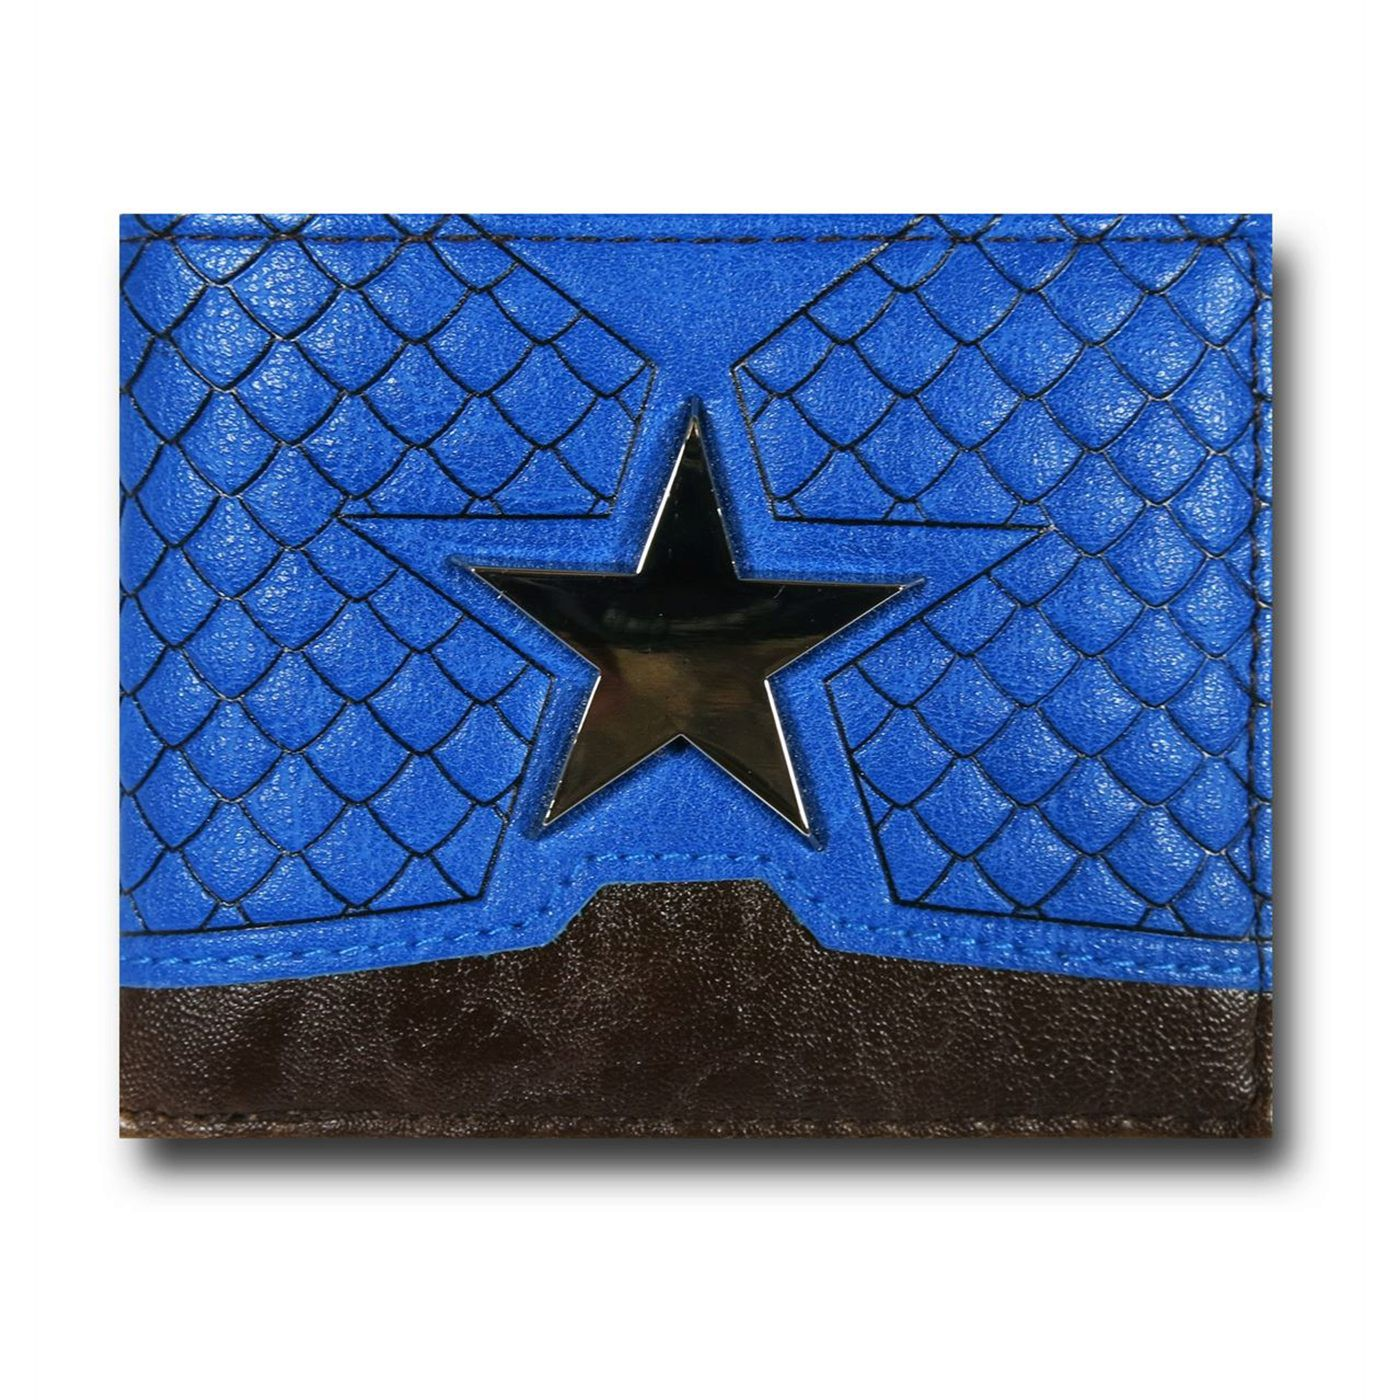 Captain America Suit-Up Men's Bi-Fold Wallet